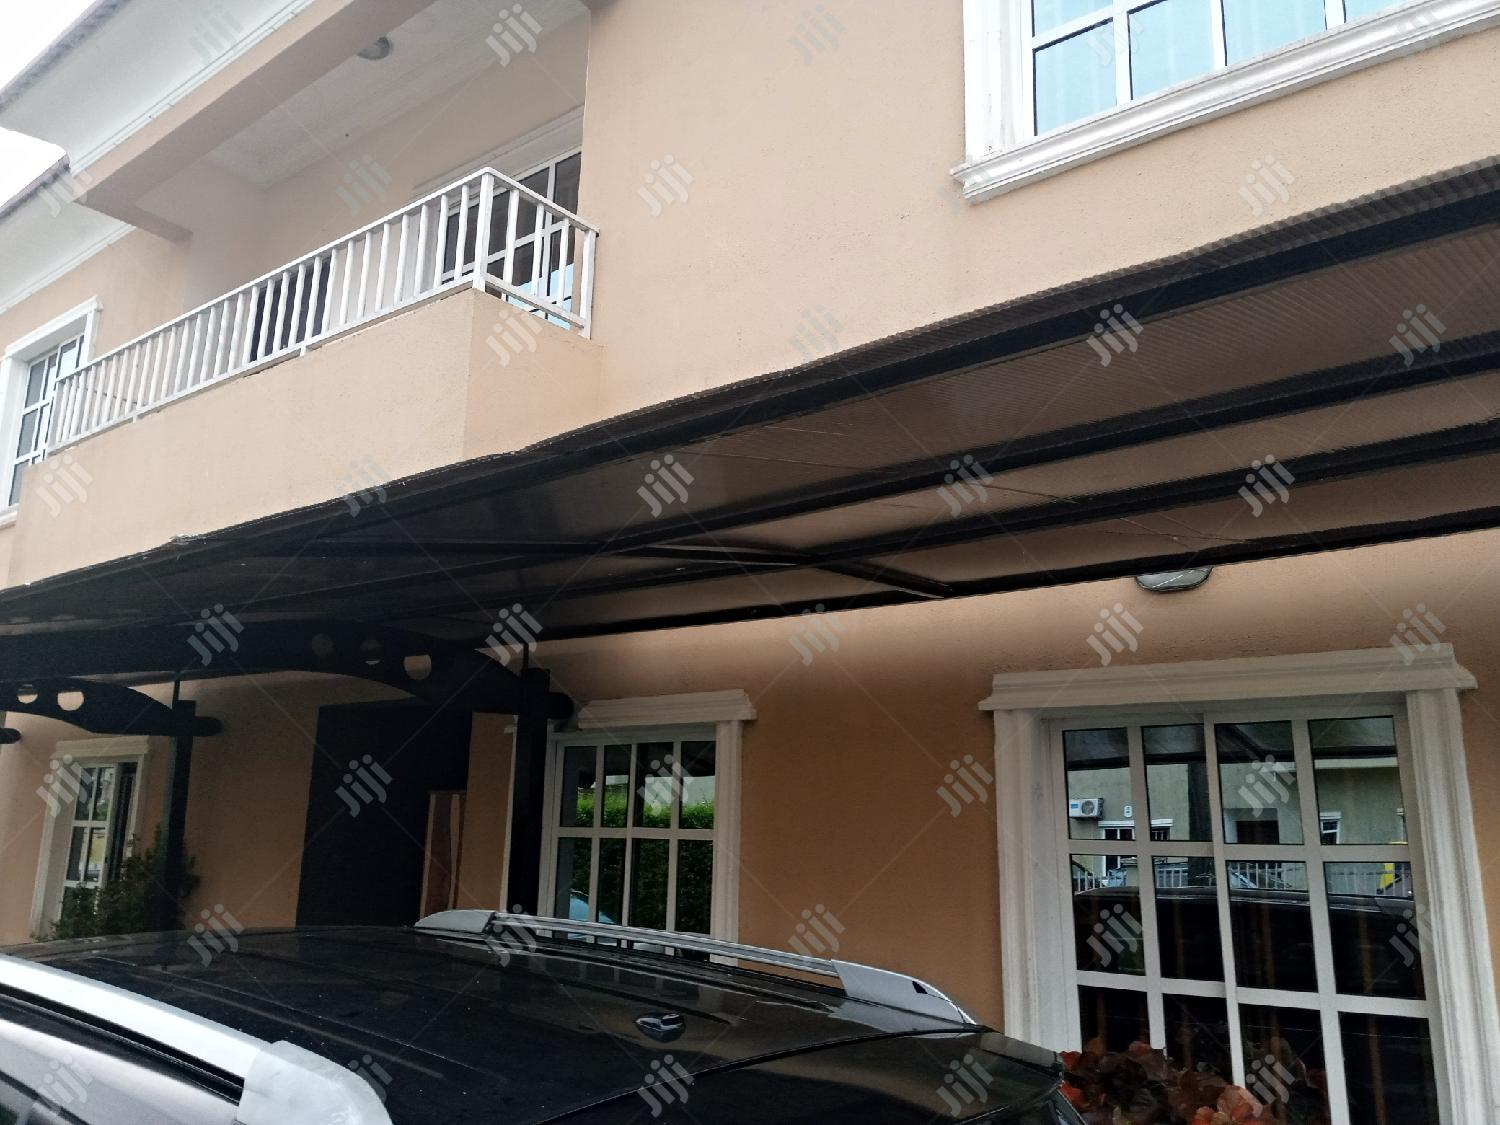 Smart Mega Sheda Fabricate And Contruct Gud Anf Well Finished Work